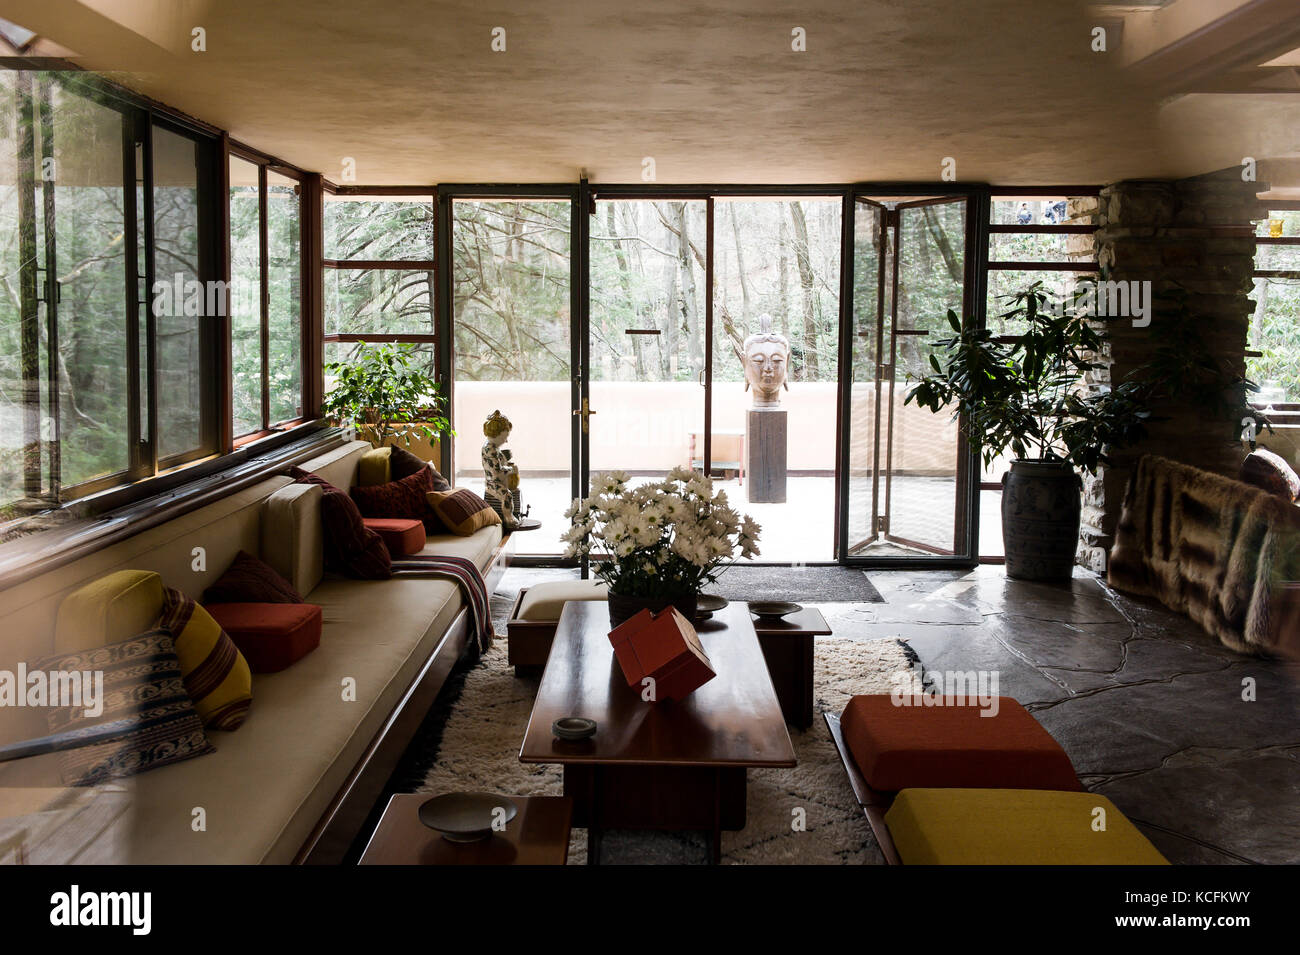 frank lloyd wright house interior stock photos u0026 frank lloyd